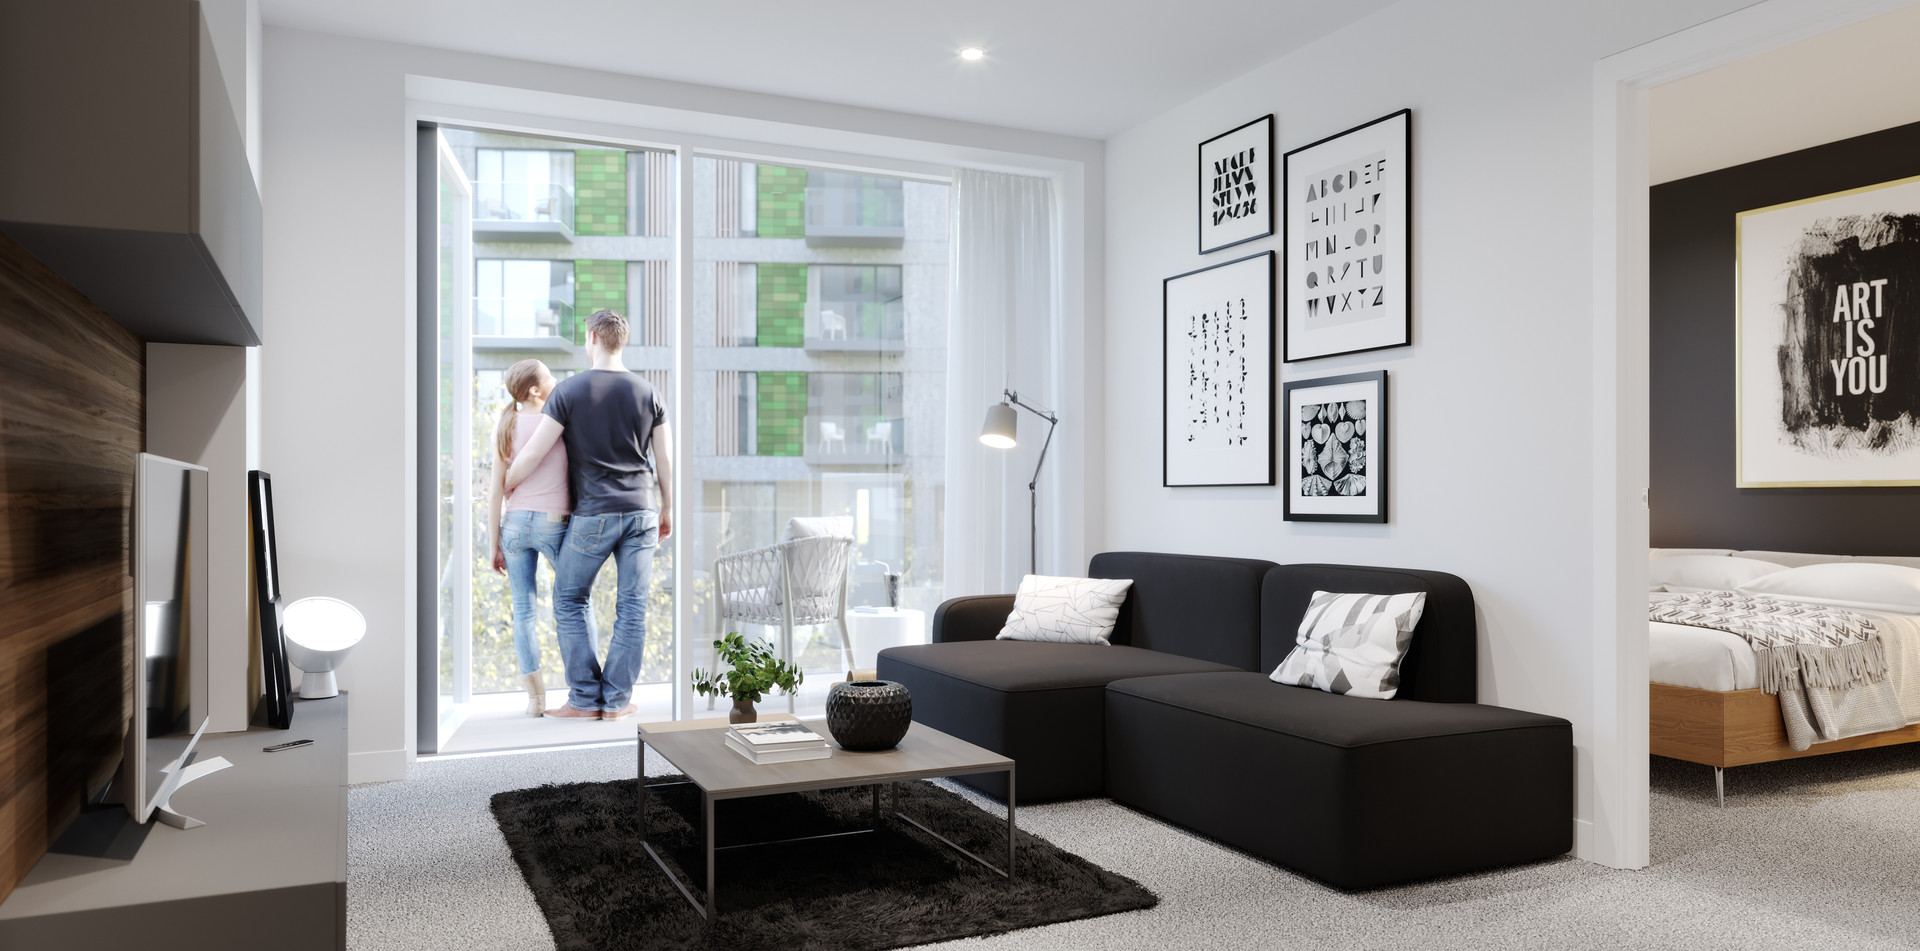 Local Blackfriars Residential Property Investment in Manchester